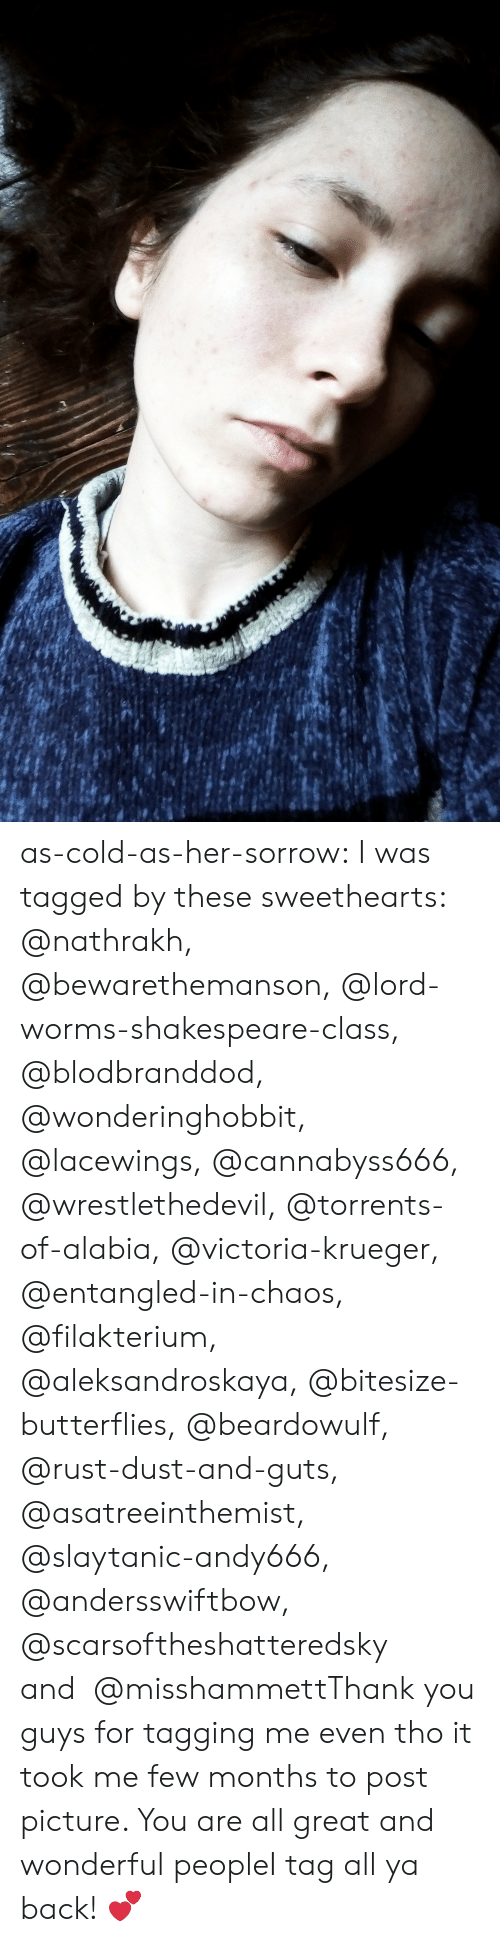 Torrents: as-cold-as-her-sorrow:  I was tagged by these sweethearts: @nathrakh, @bewarethemanson, @lord-worms-shakespeare-class, @blodbranddod, @wonderinghobbit, @lacewings, @cannabyss666, @wrestlethedevil, @torrents-of-alabia, @victoria-krueger, @entangled-in-chaos, @filakterium, @aleksandroskaya, @bitesize-butterflies, @beardowulf, @rust-dust-and-guts, @asatreeinthemist, @slaytanic-andy666, @andersswiftbow, @scarsoftheshatteredsky and  @misshammettThank you guys for tagging me even tho it took me few months to post picture. You are all great and wonderful peopleI tag all ya back! 💕